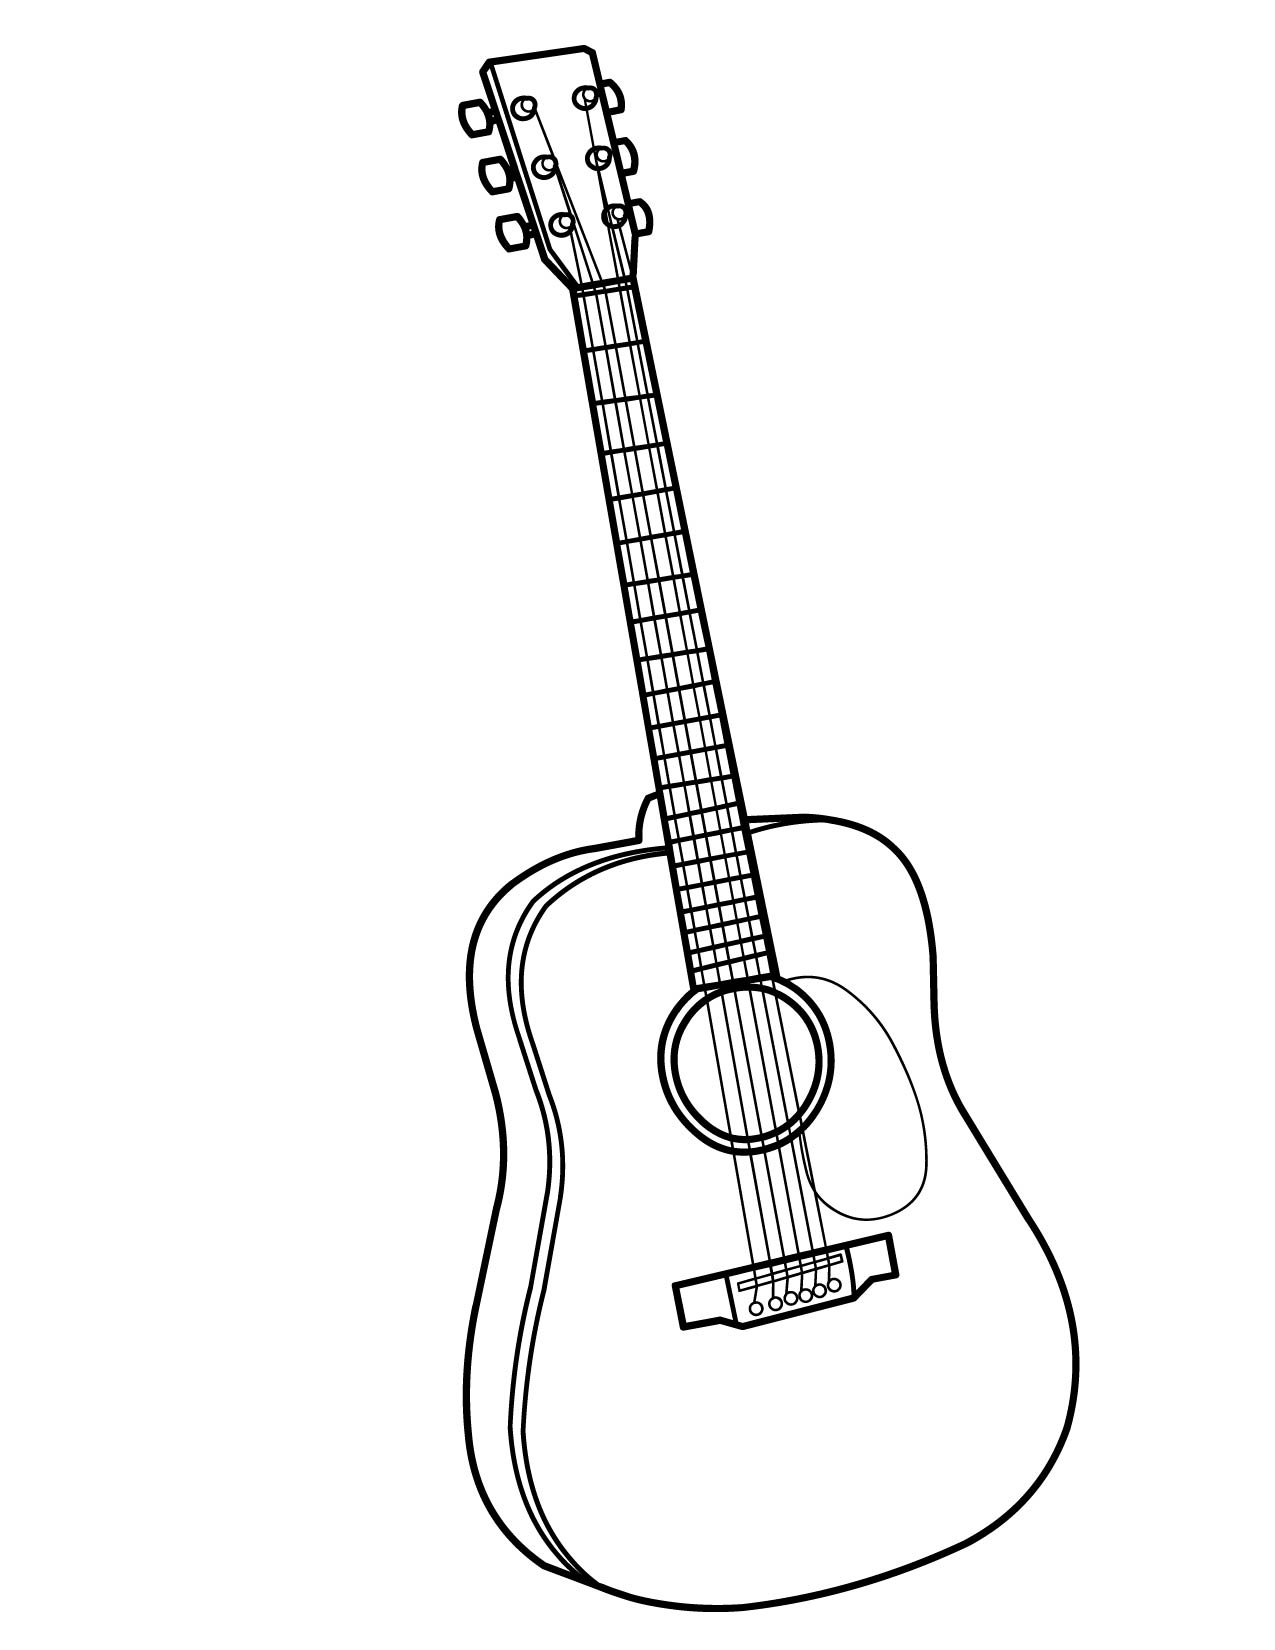 Acoustic Guitar Line Drawing At Getdrawings